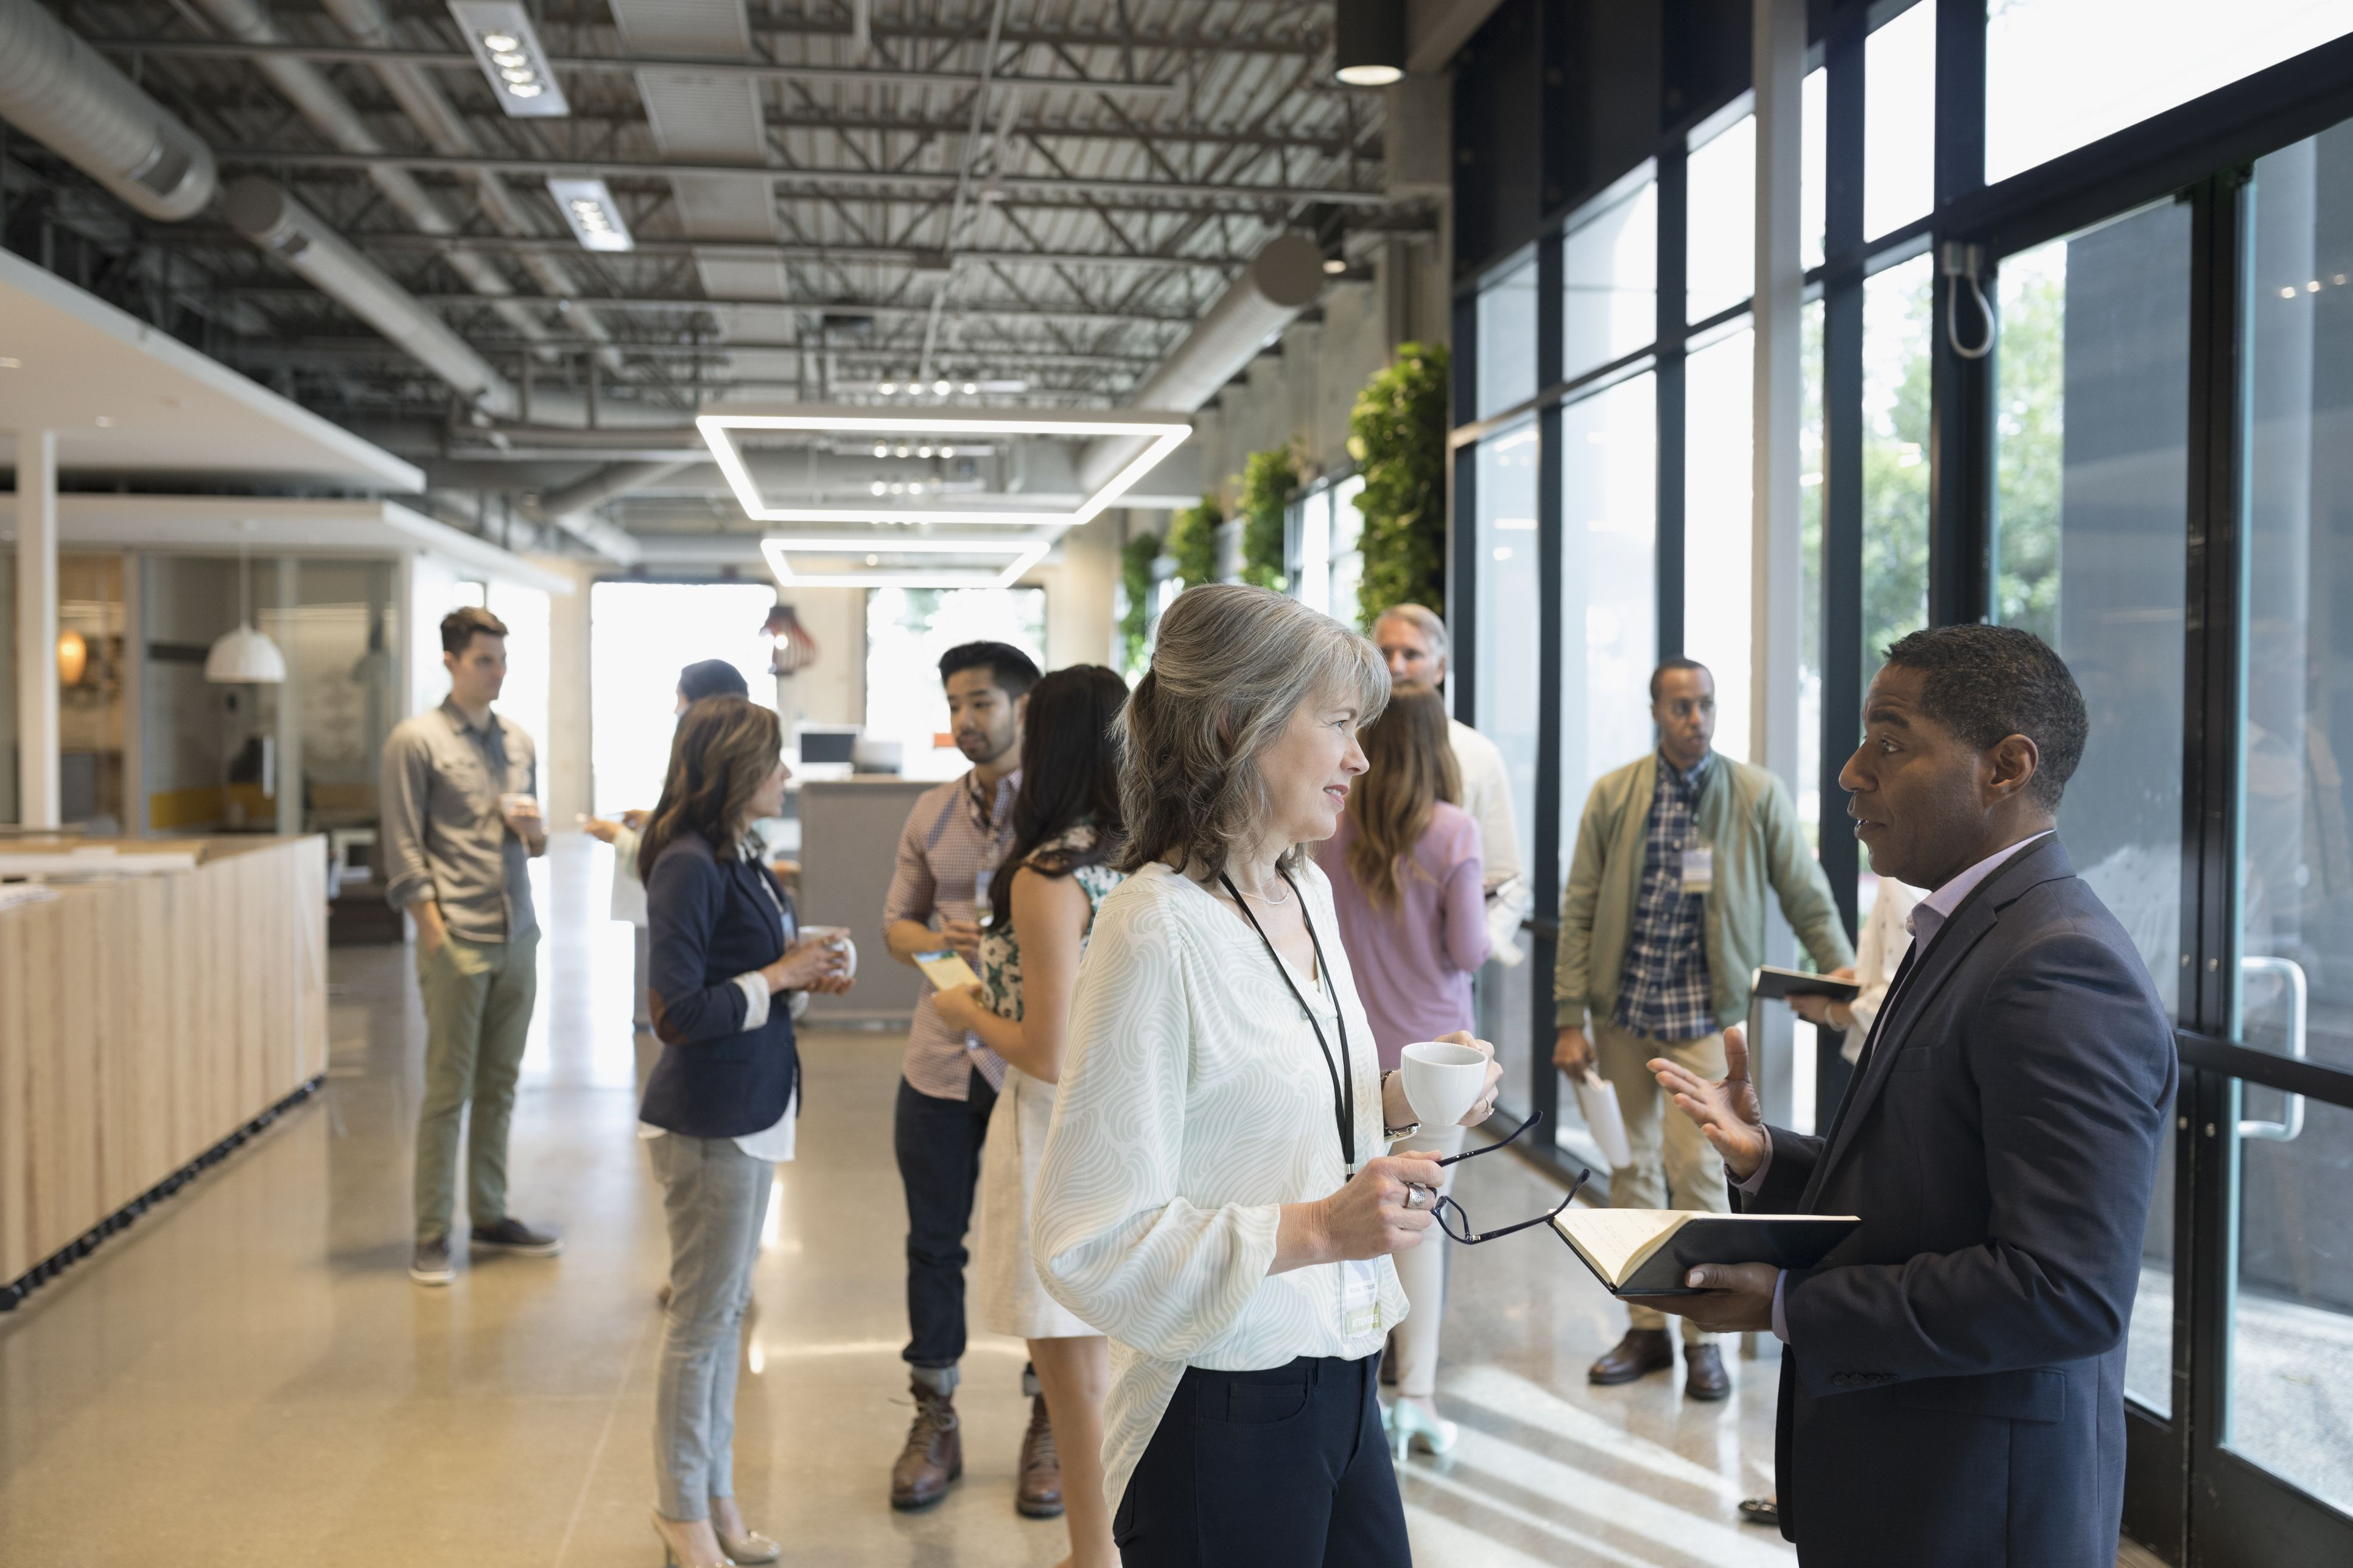 Business people mingling in office lobby